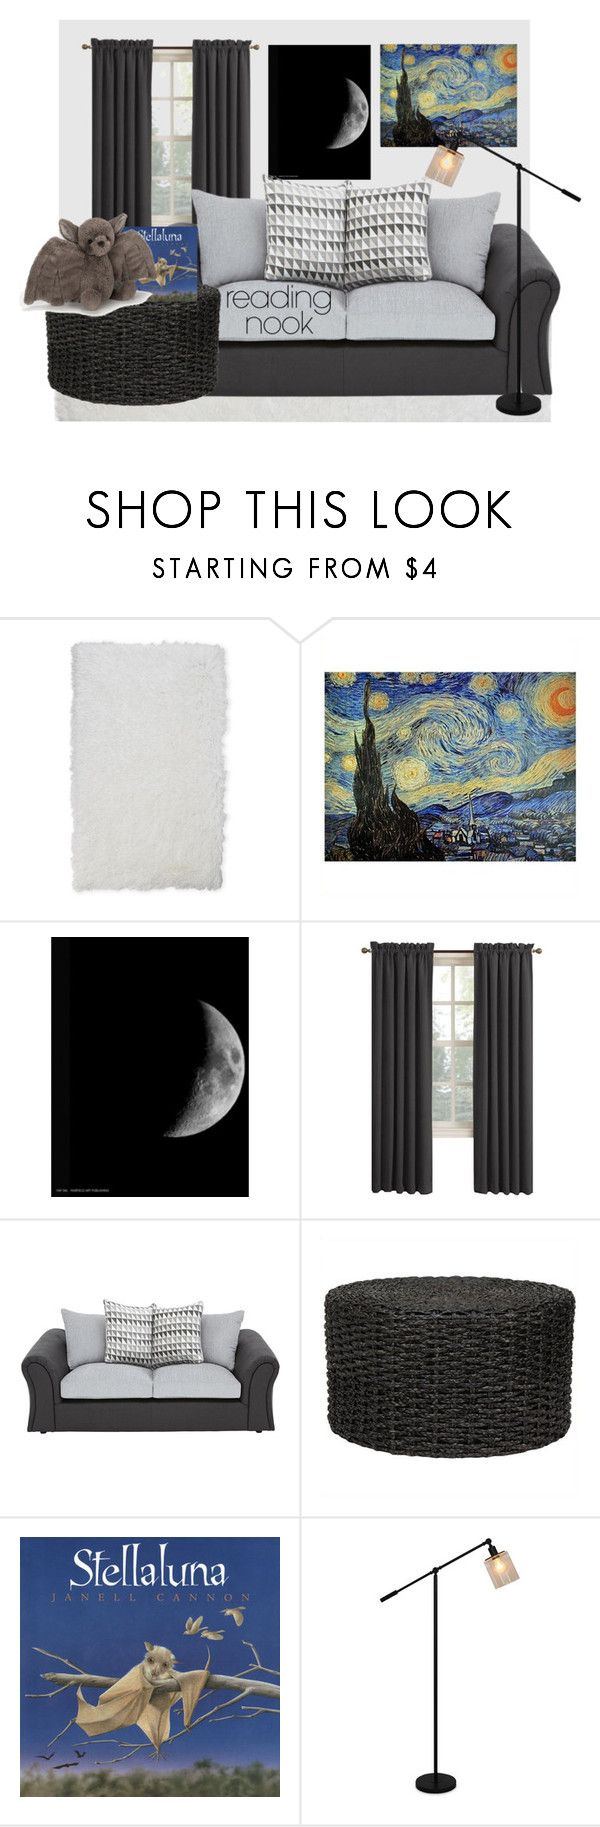 """""""spooky stories"""" by purplicious ❤ liked on Polyvore featuring interior, interiors, interior design, home, home decor, interior decorating, Home Dynamix, Sun Zero and Nook"""